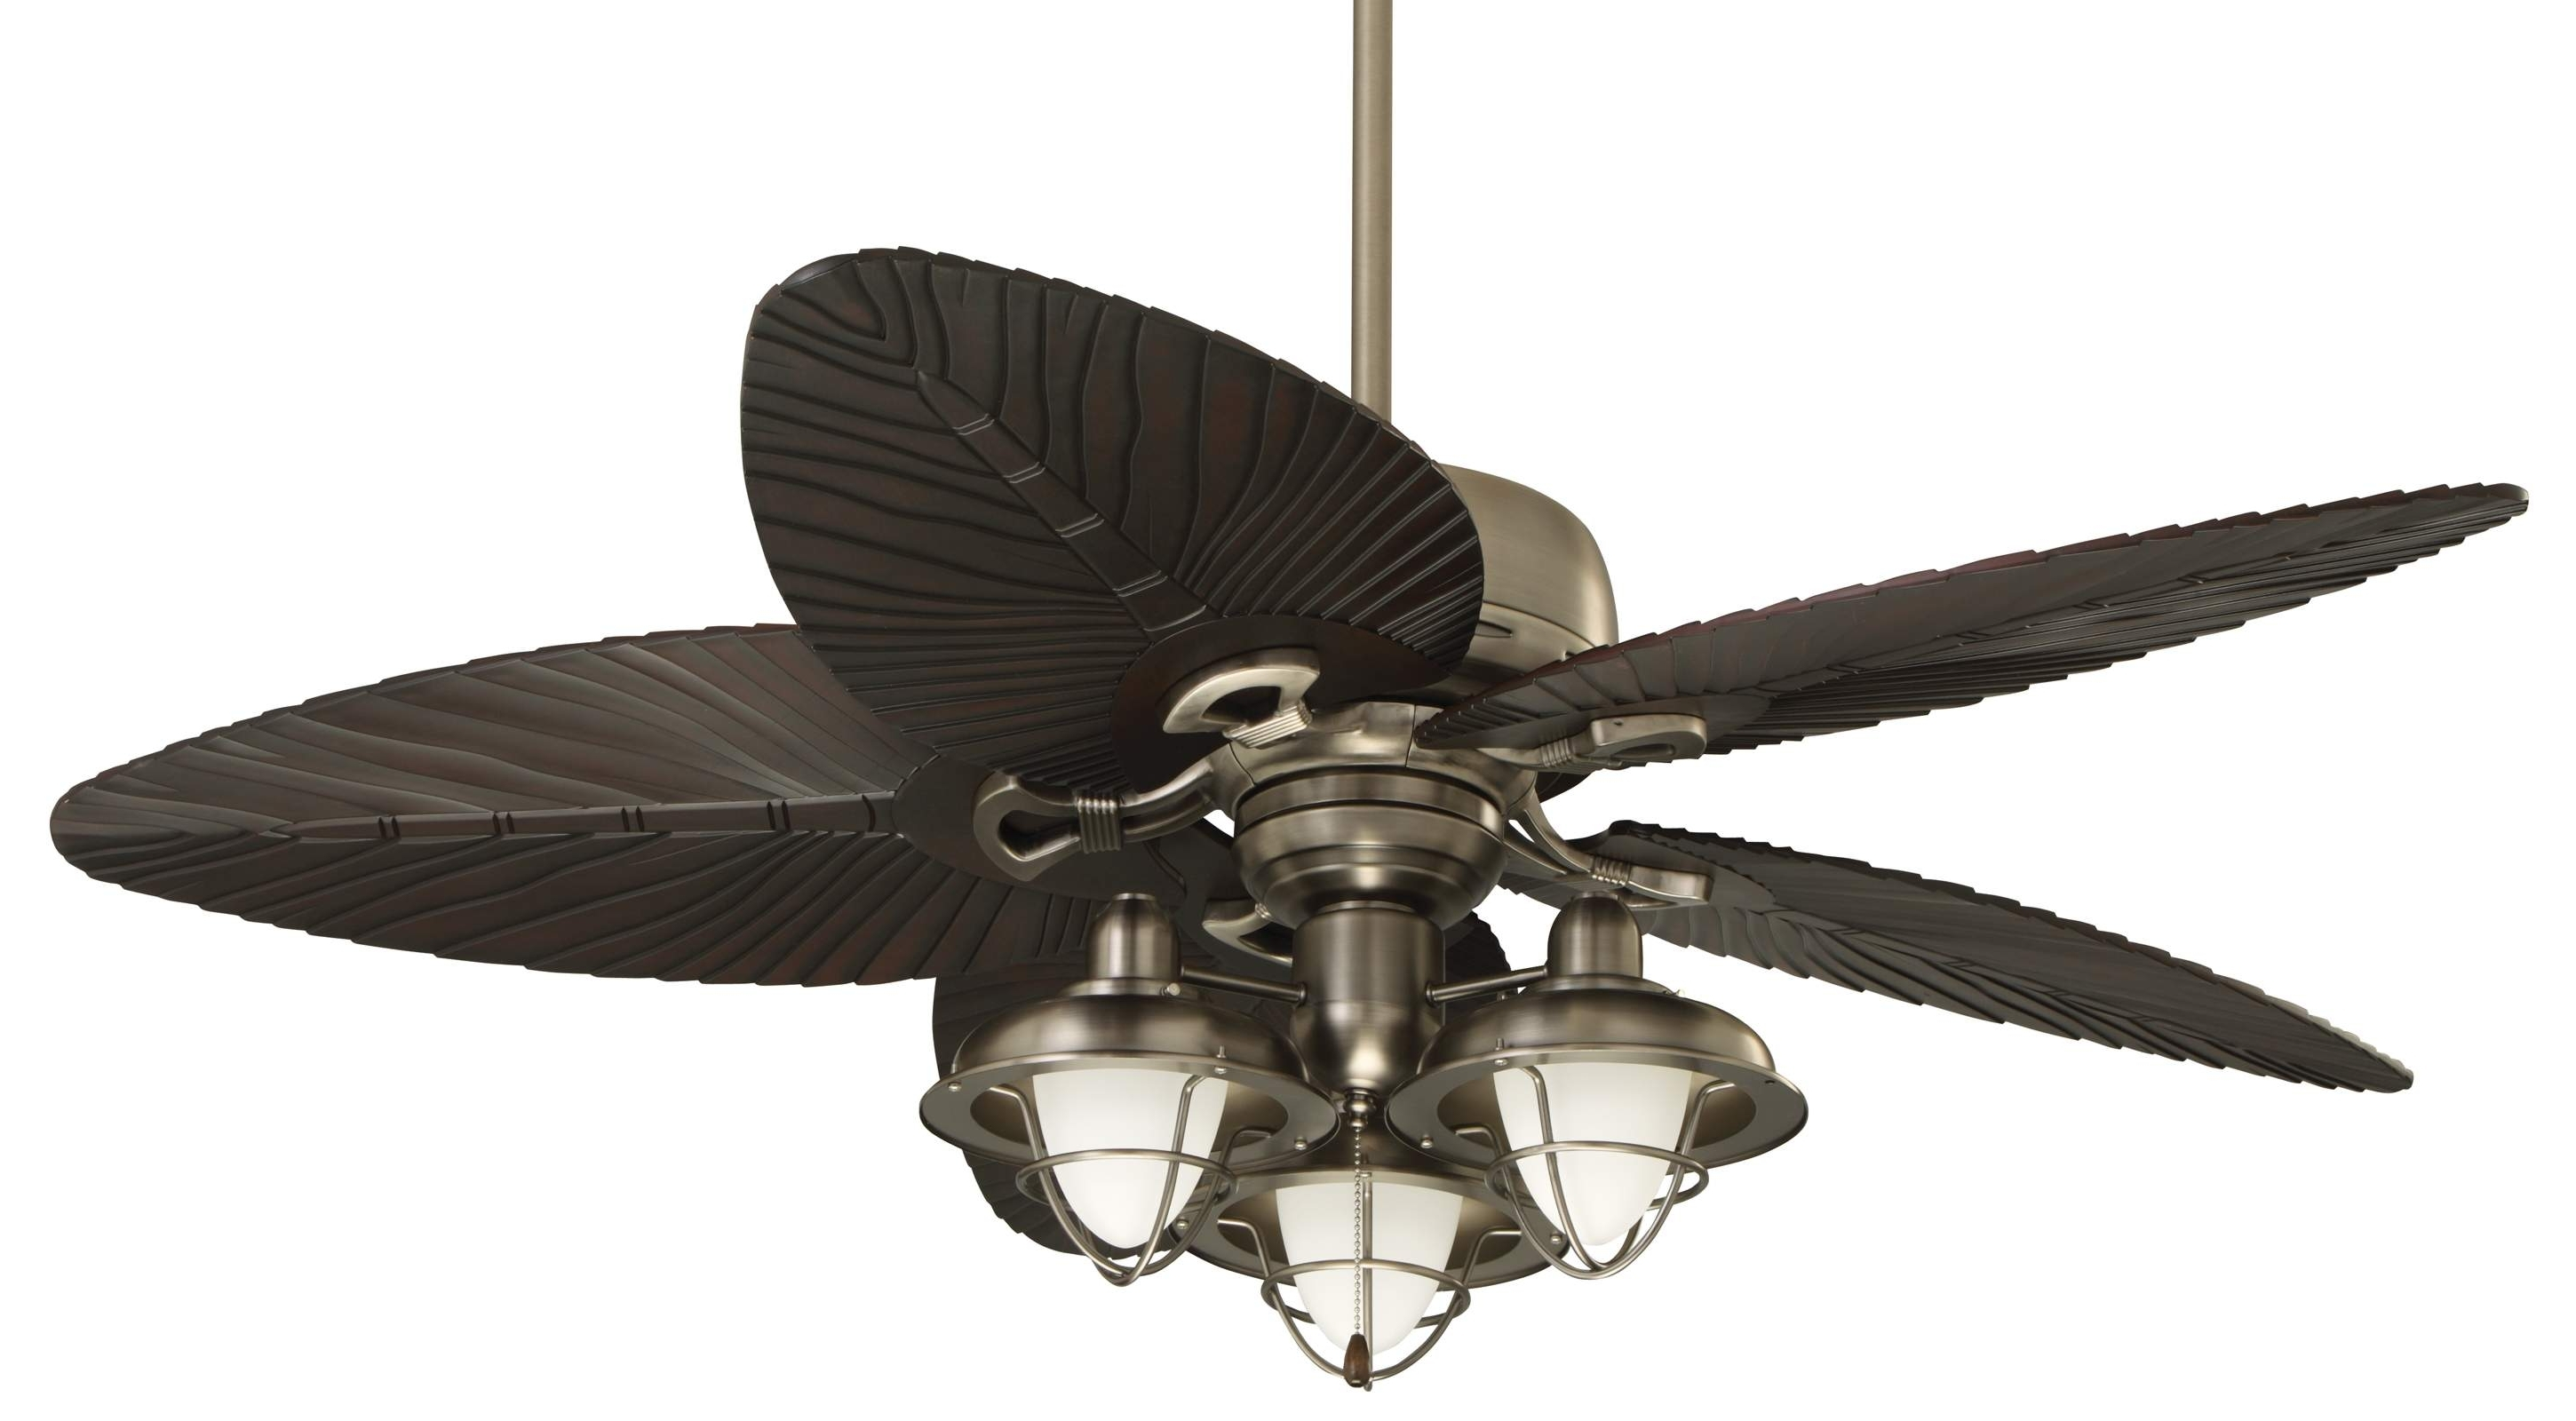 Decor: Bring An Island Look Into Your Home With Cool Ceiling Fan For Popular Outdoor Ceiling Fans At Lowes (View 5 of 20)